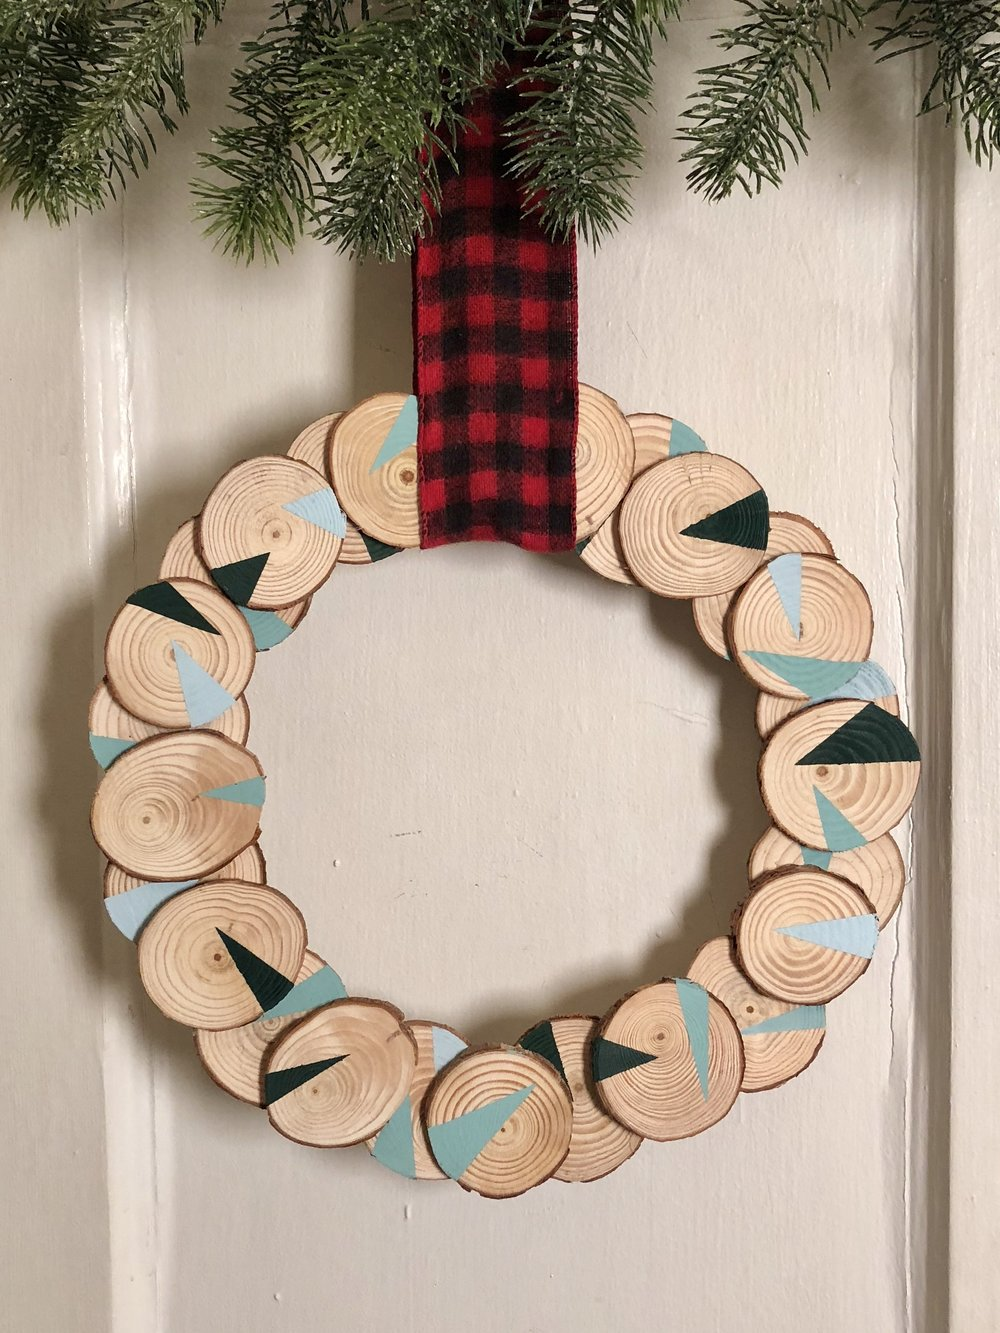 Three easy Christmas DIYs made from wood slices - a wood slice print, a wreath, and easy potpourri!